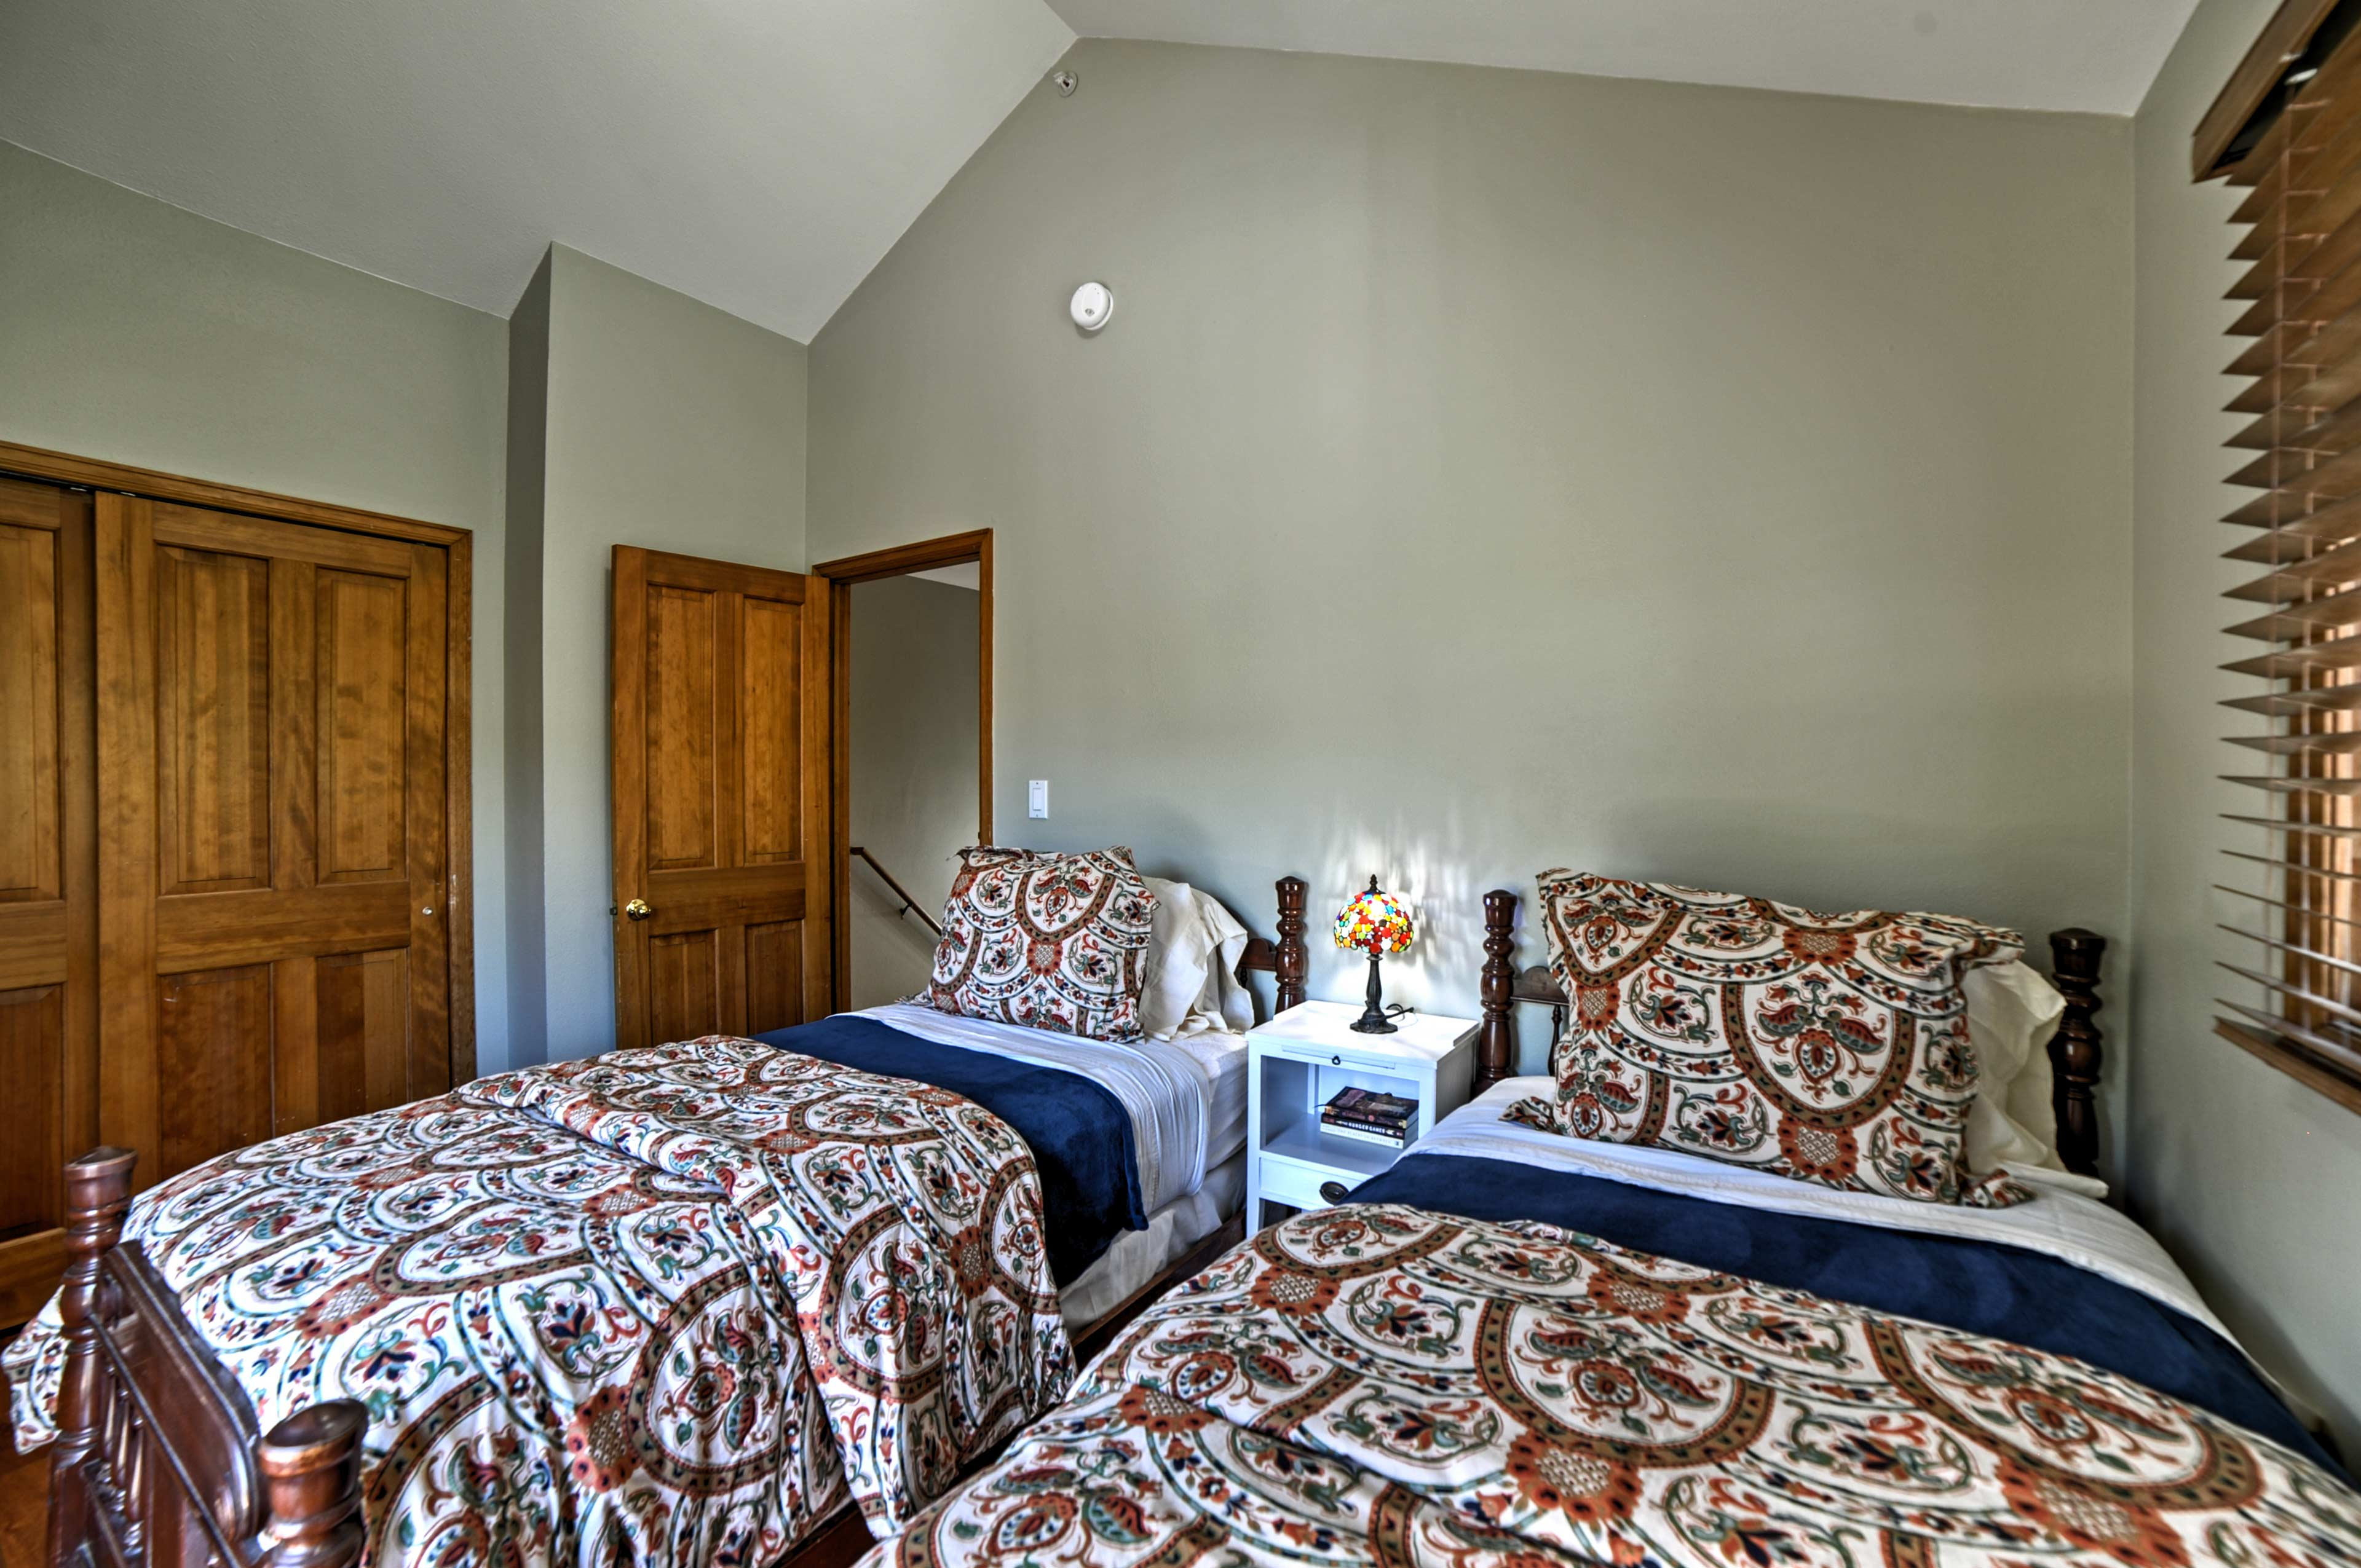 This first bedroom contains 2 twin-sized beds.